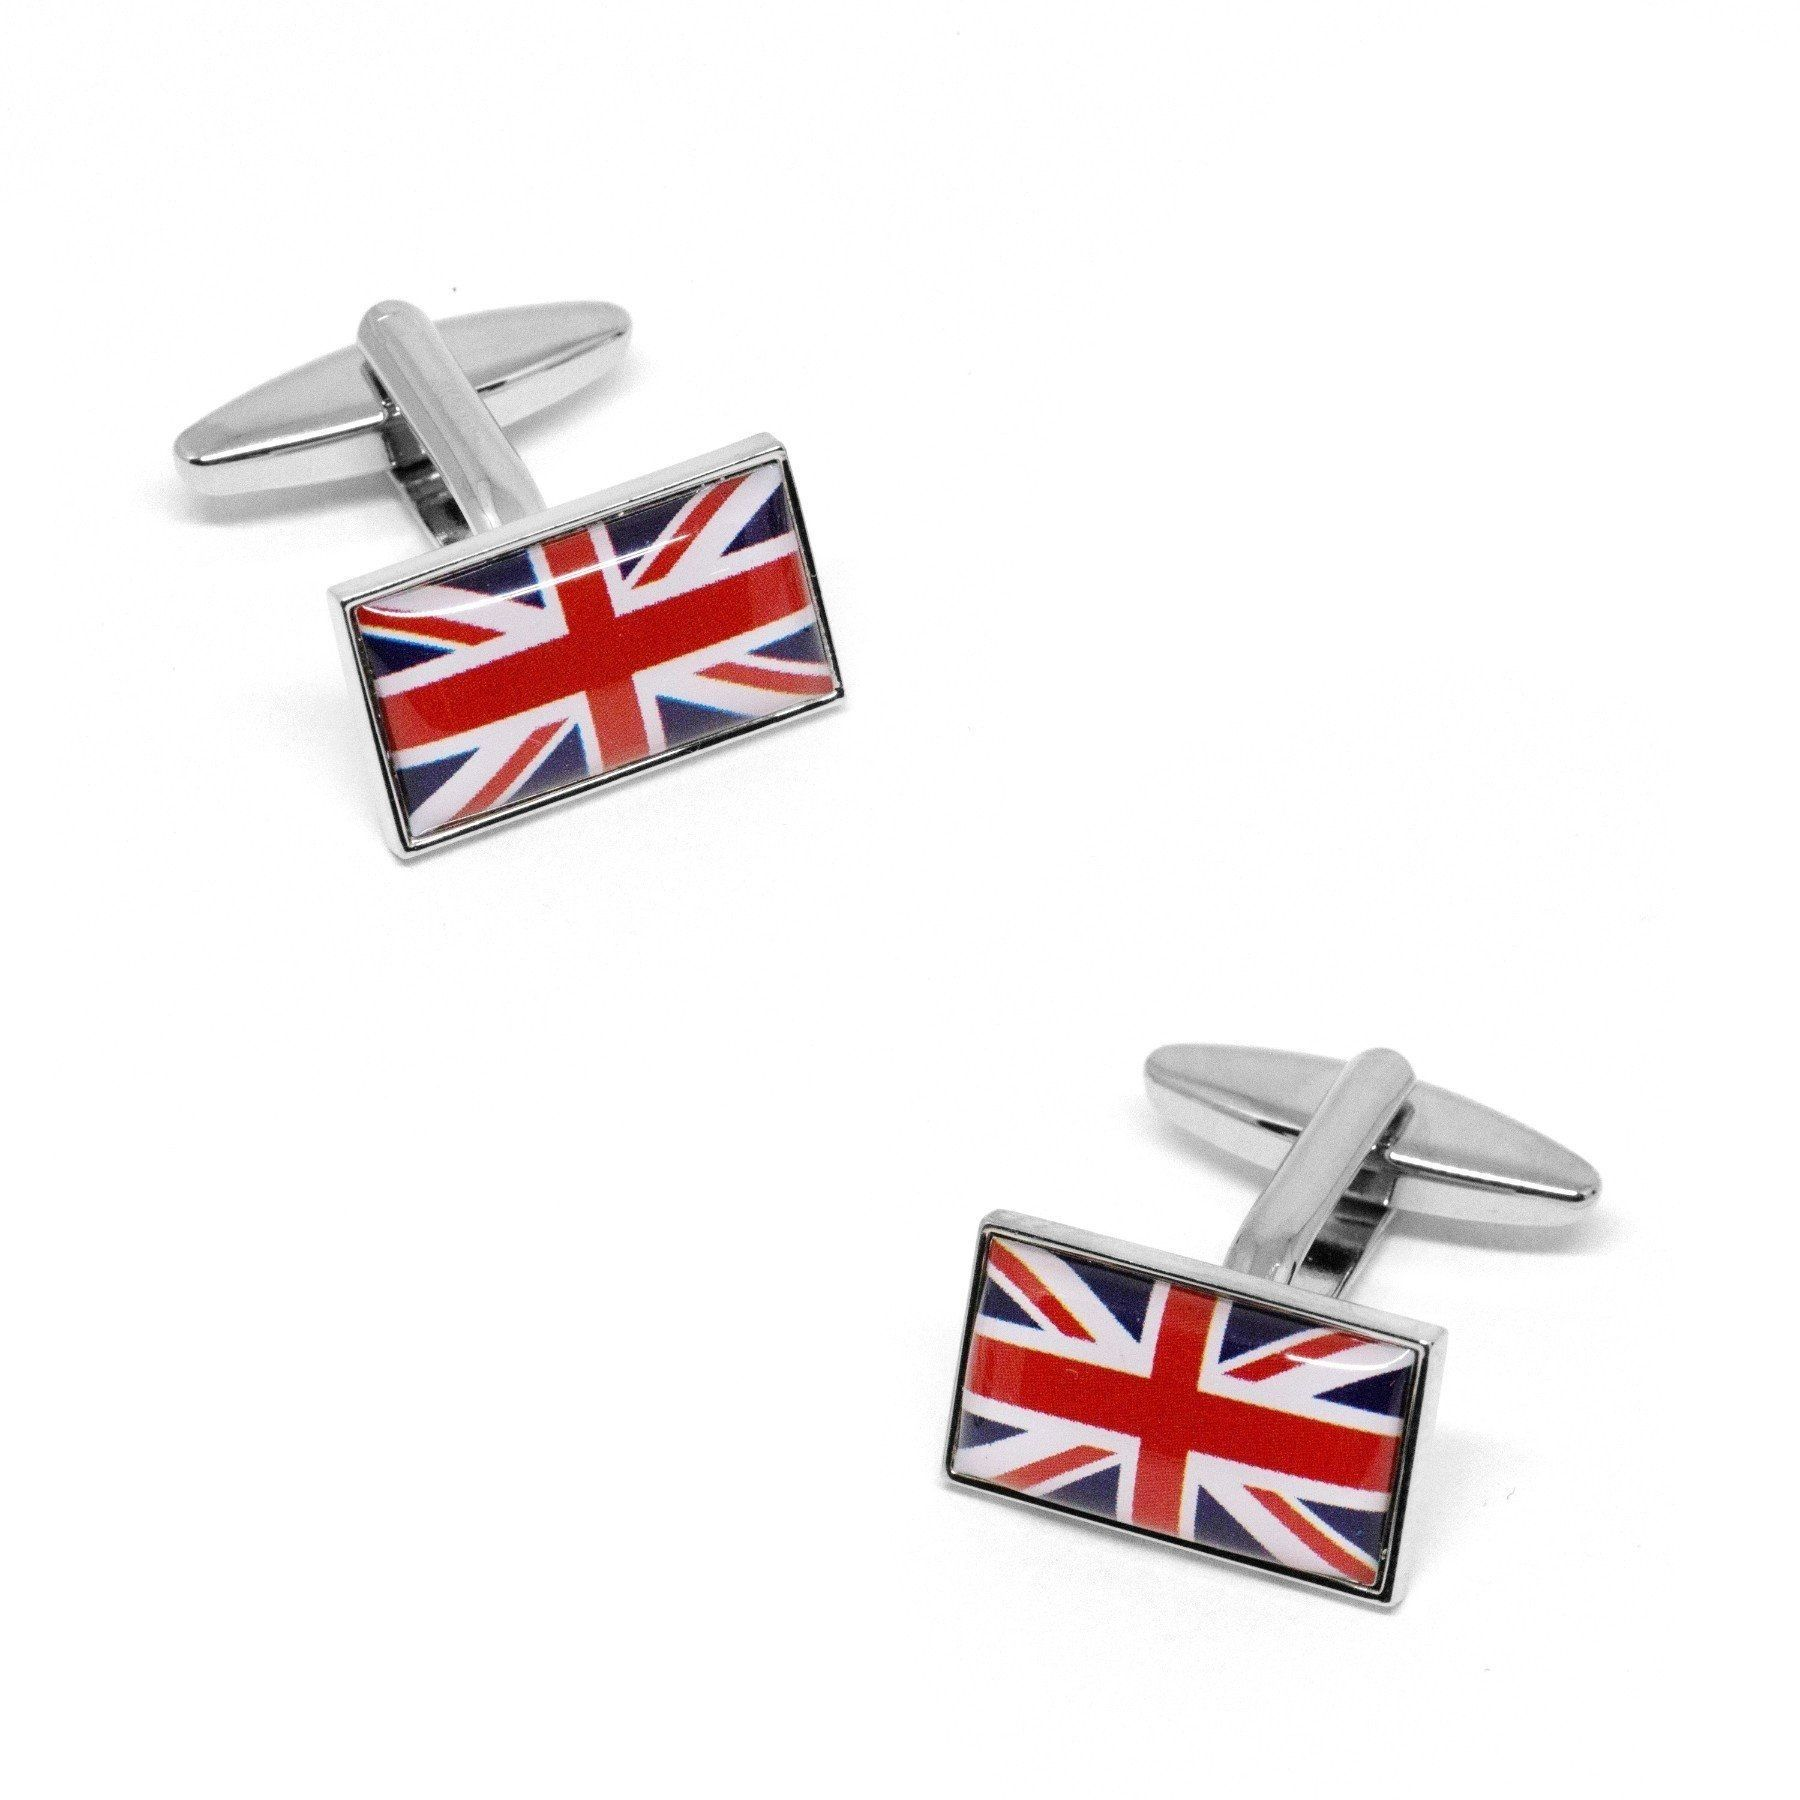 Flag of England - Union Jack Cufflinks, Novelty Cufflinks, Cuffed.com.au, CL8572, $29.00